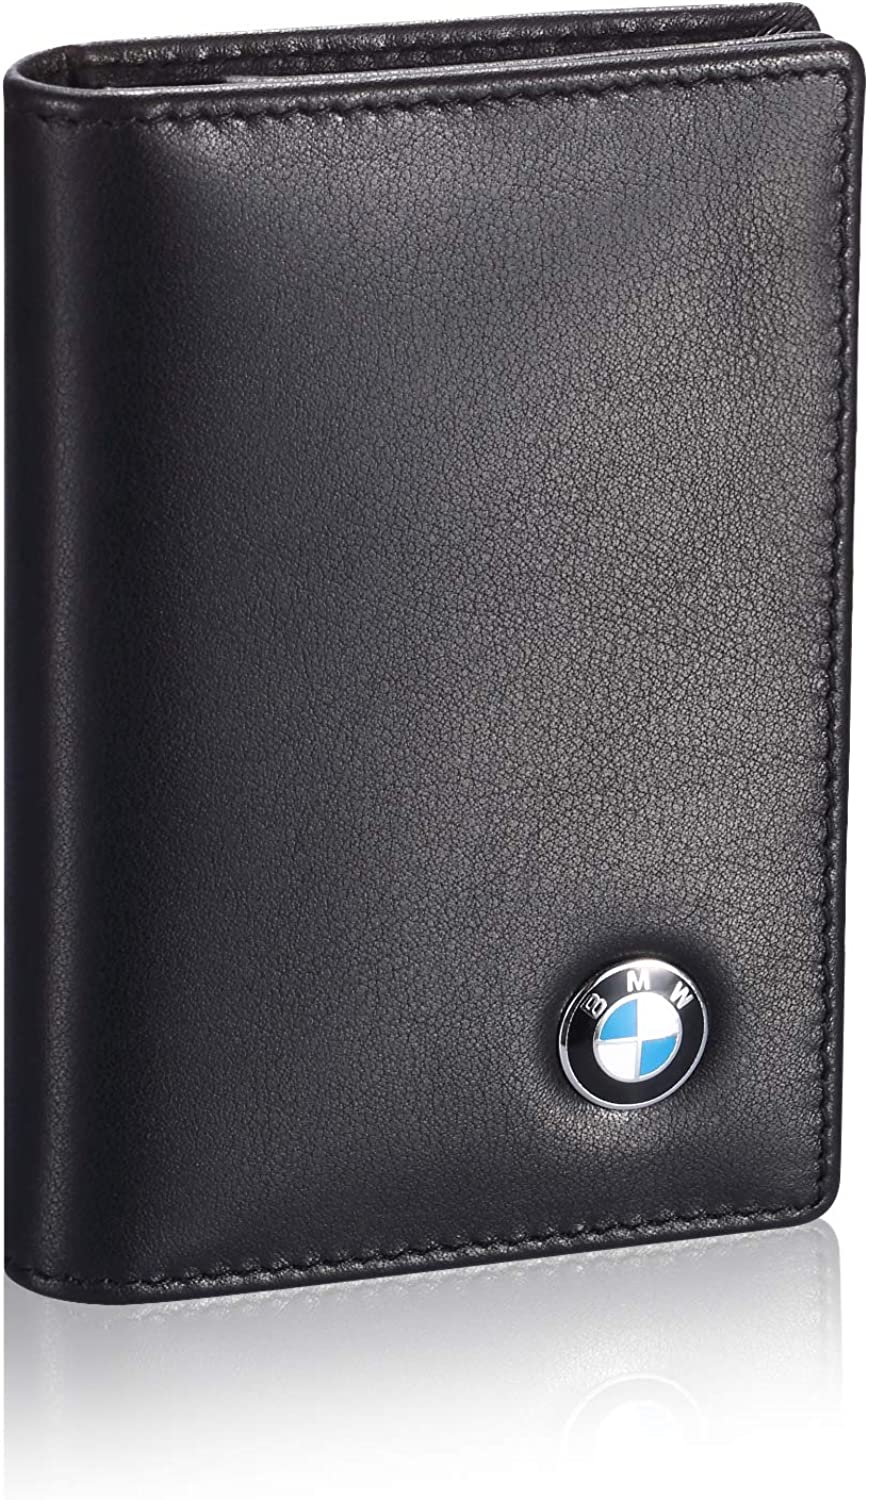 Tuoco BMW Business Card Holder with Large Compartment - Full Grain Leather, Black, Small